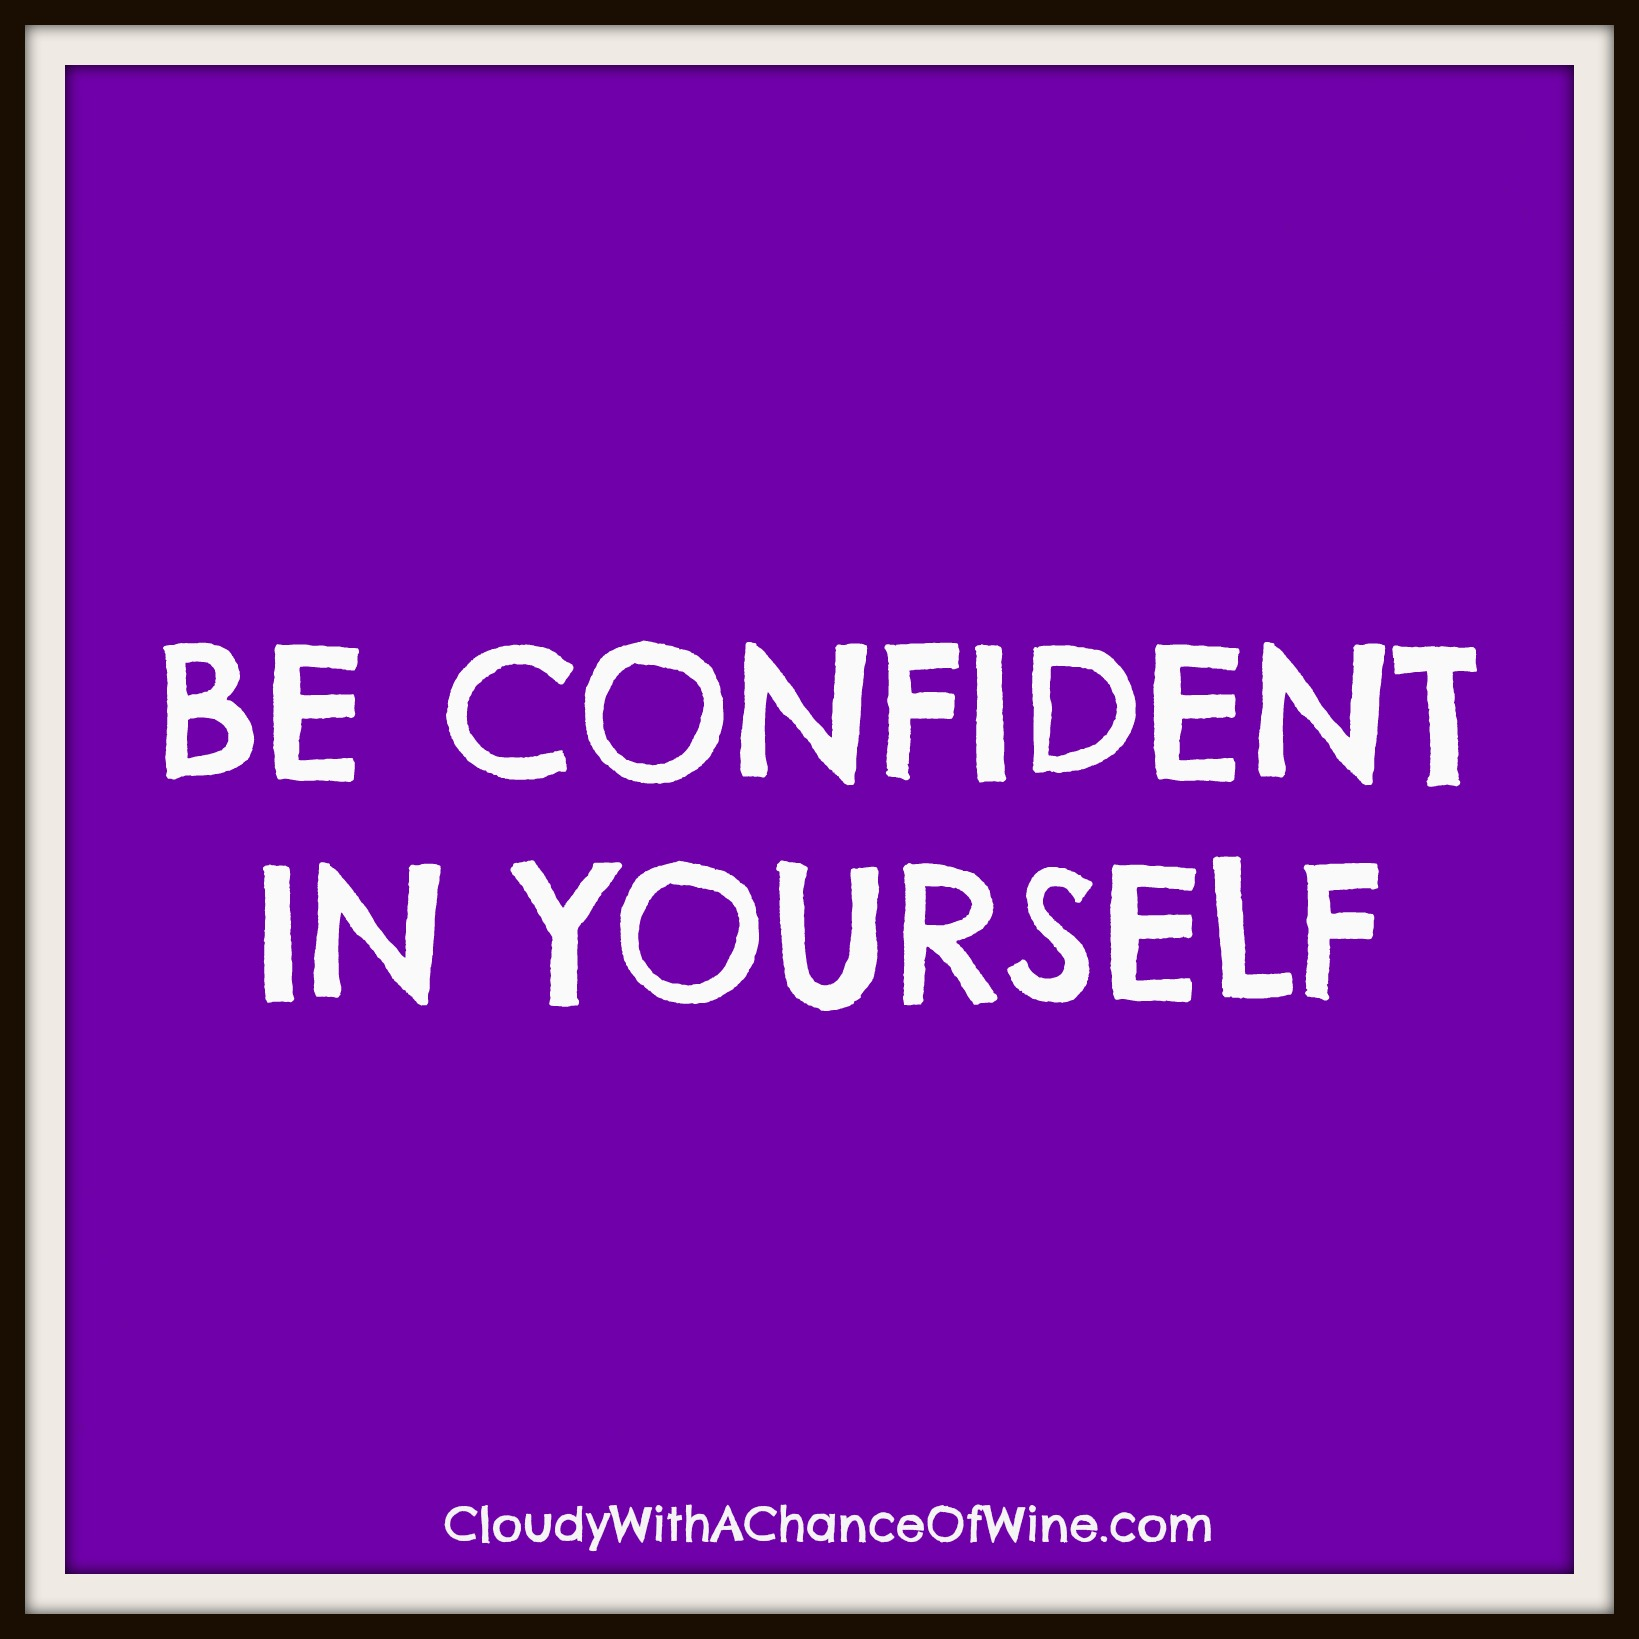 Quotes About Being Confident Quotes About Being Confident With Yourself 15 Quotes